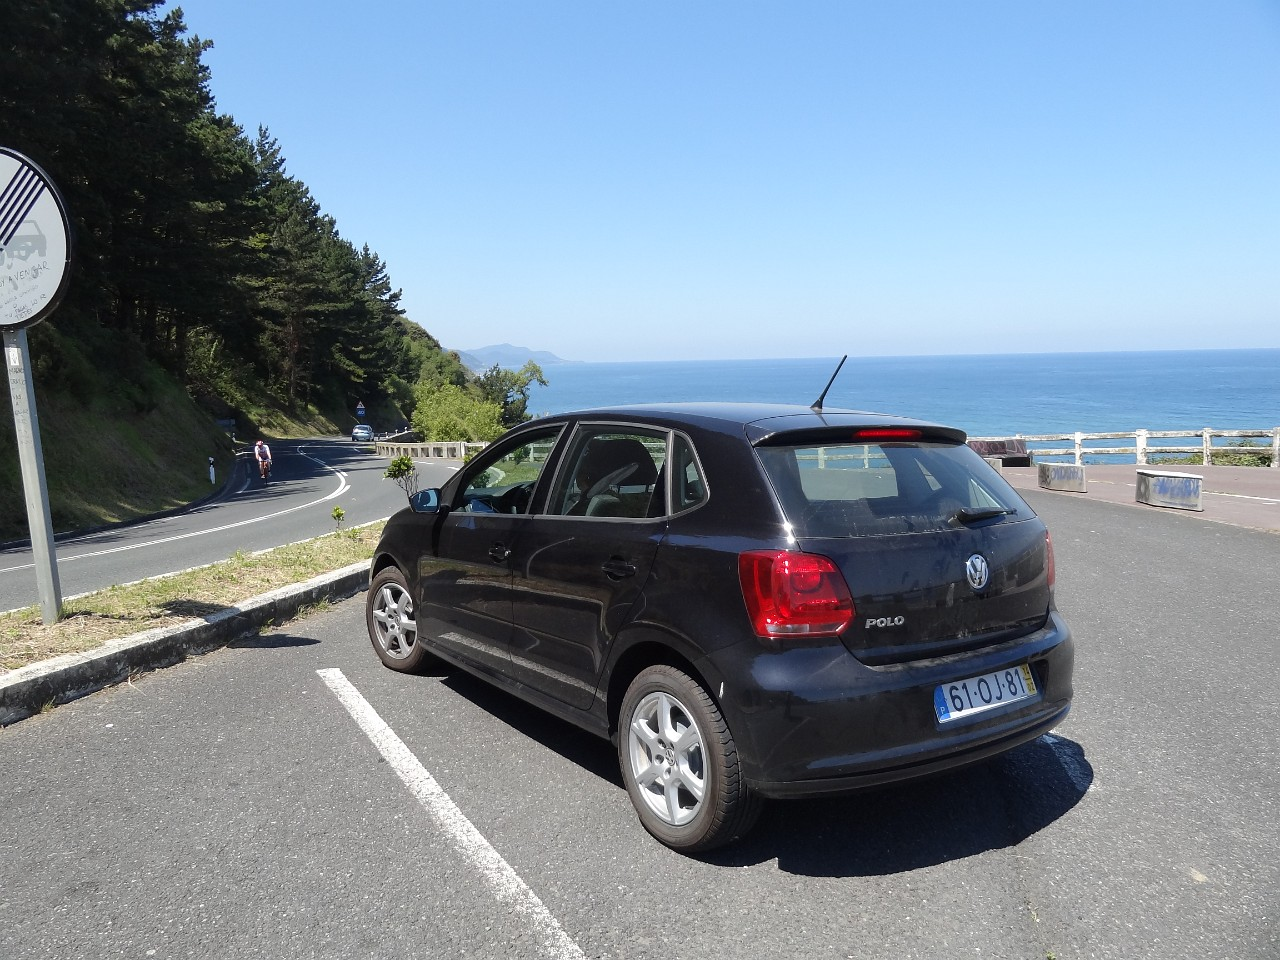 VW Polo on N-634 to Getaria